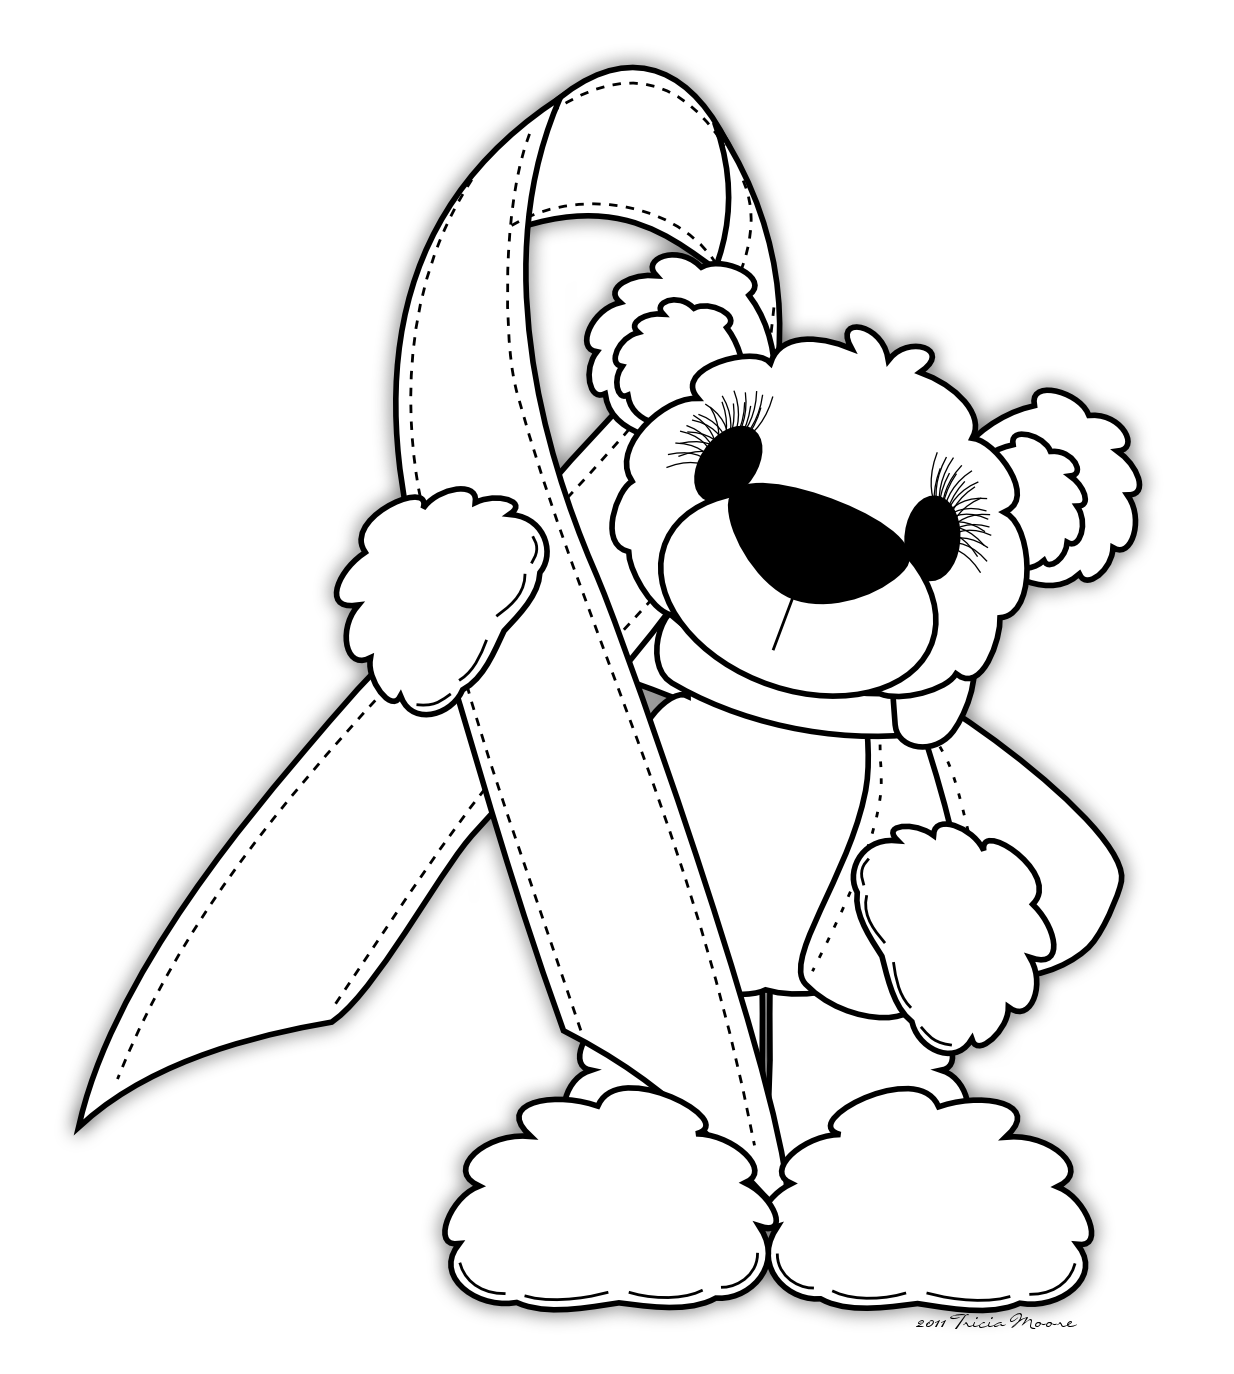 coloring pages for cancer awareness | Little Scraps of Heaven Designs: October 2011